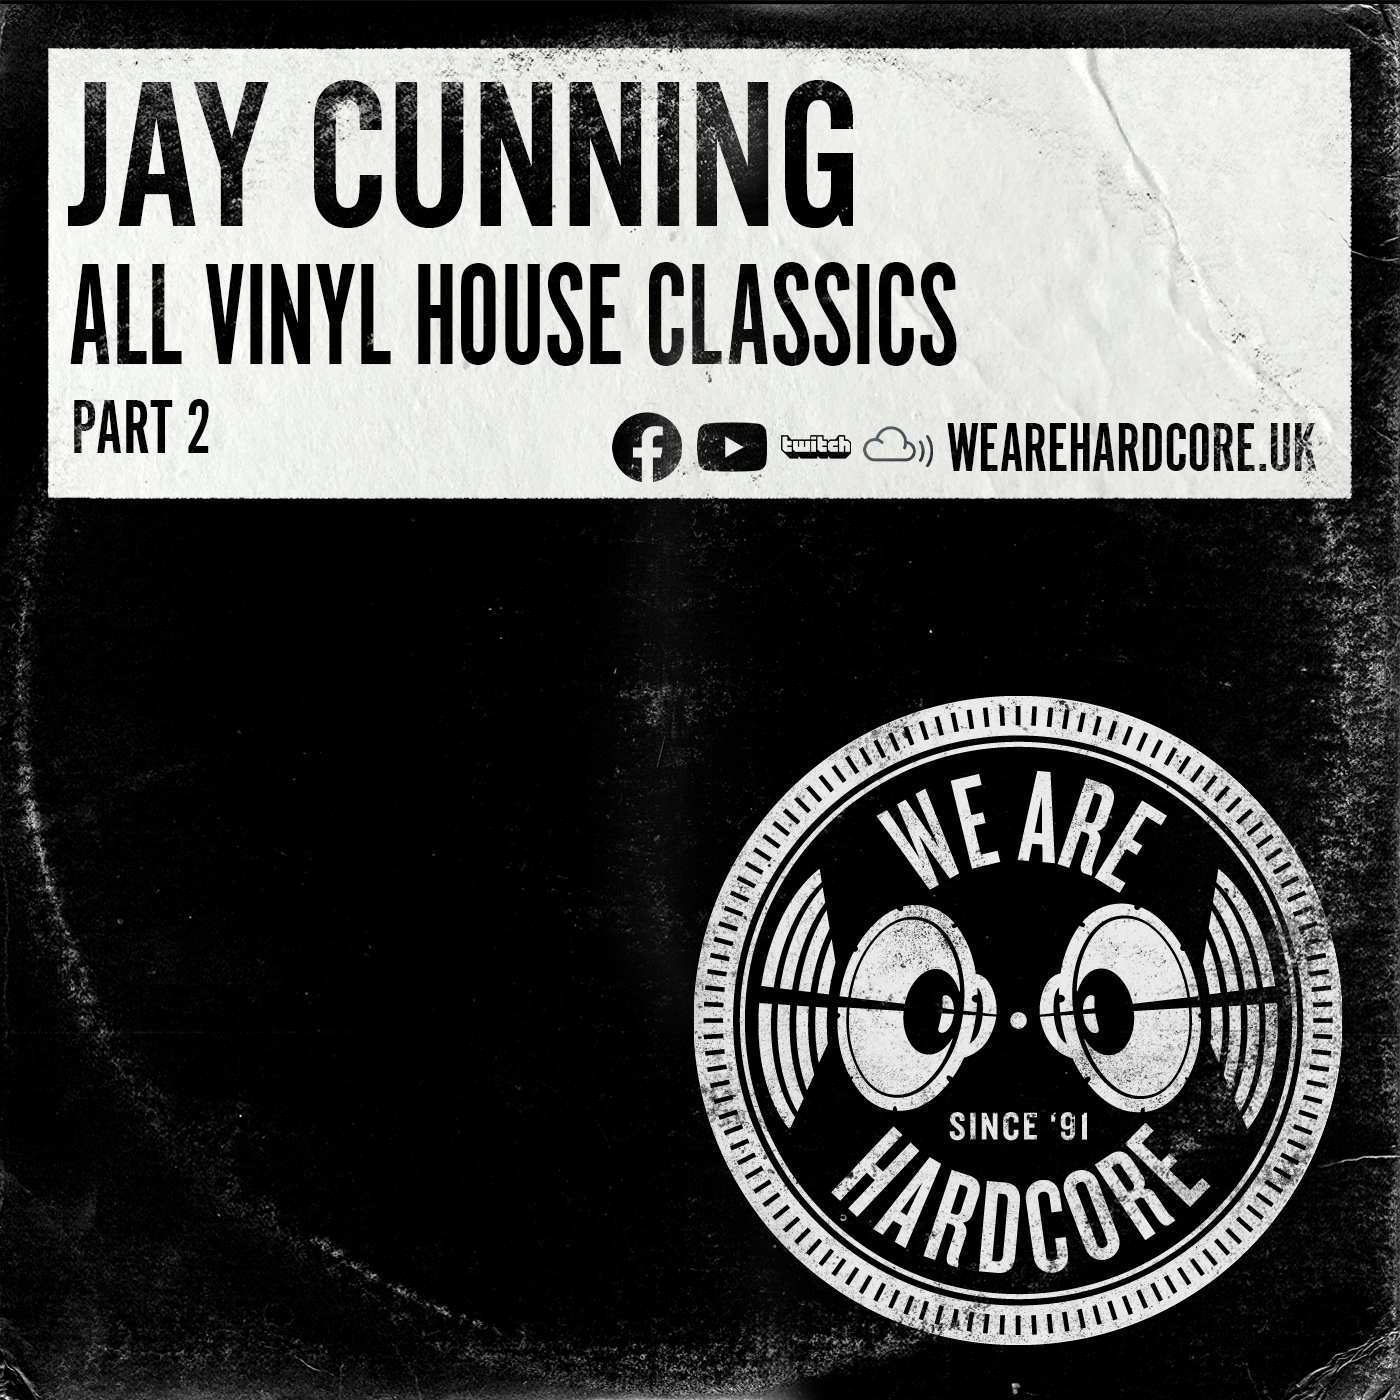 All Vinyl House Classics - Jay Cunning - WE ARE HARDCORE